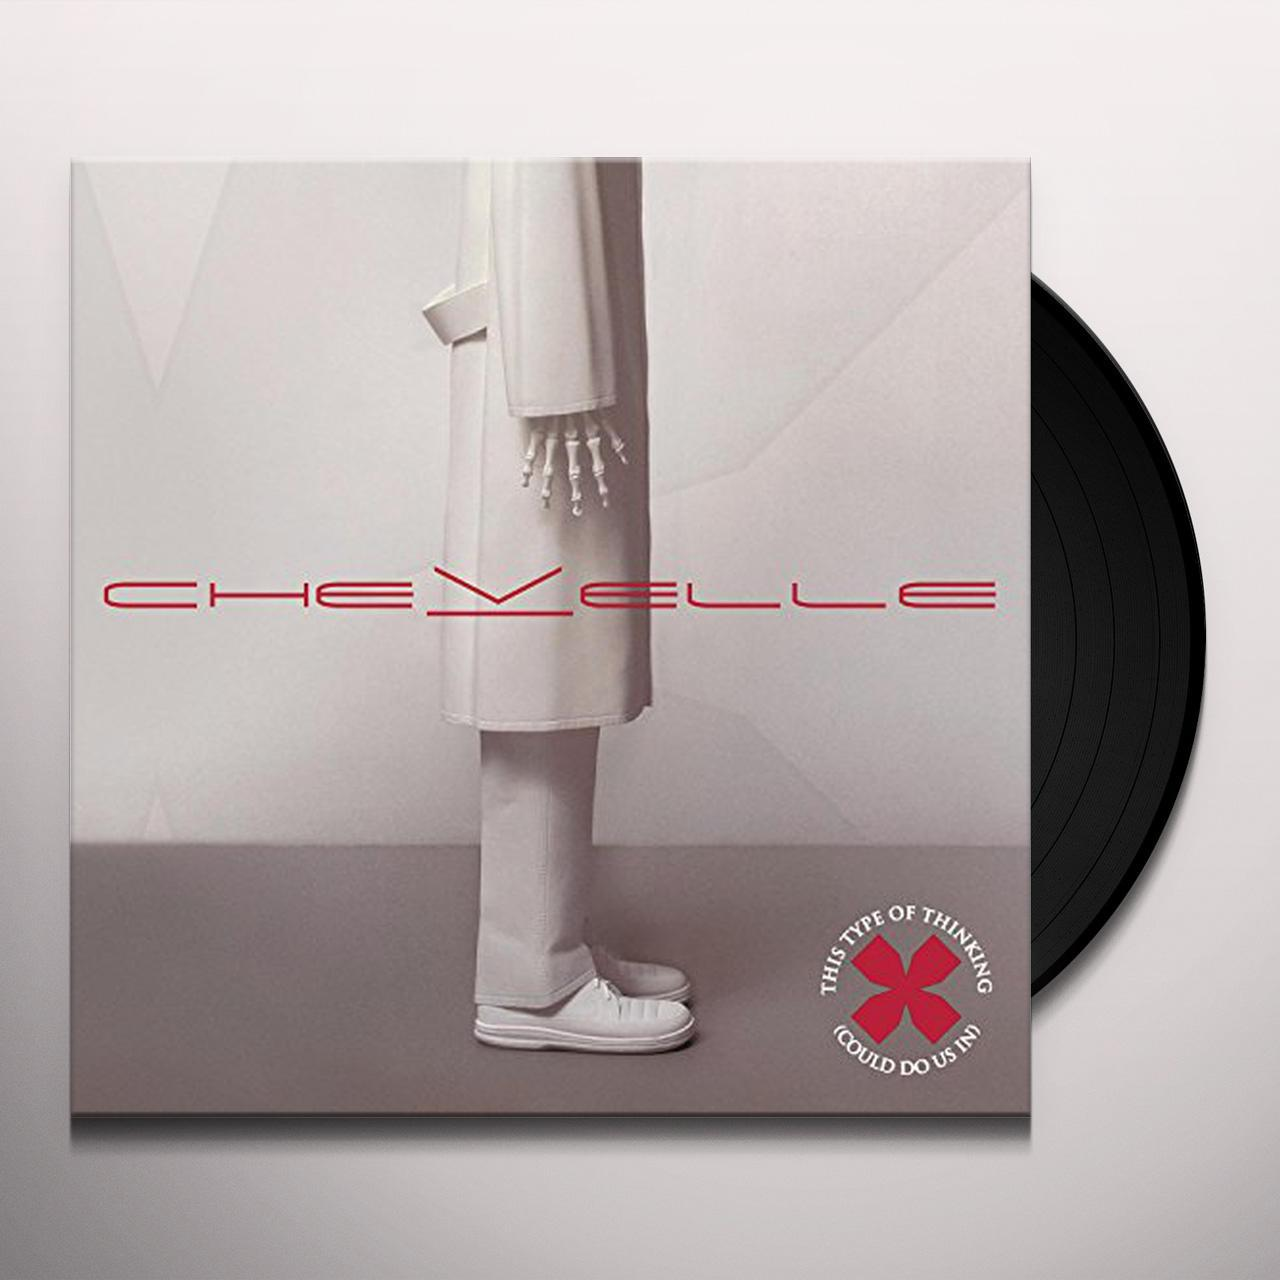 643a58275cd6c Chevelle THIS TYPE OF THINKING (COULD DO US IN) Vinyl Record